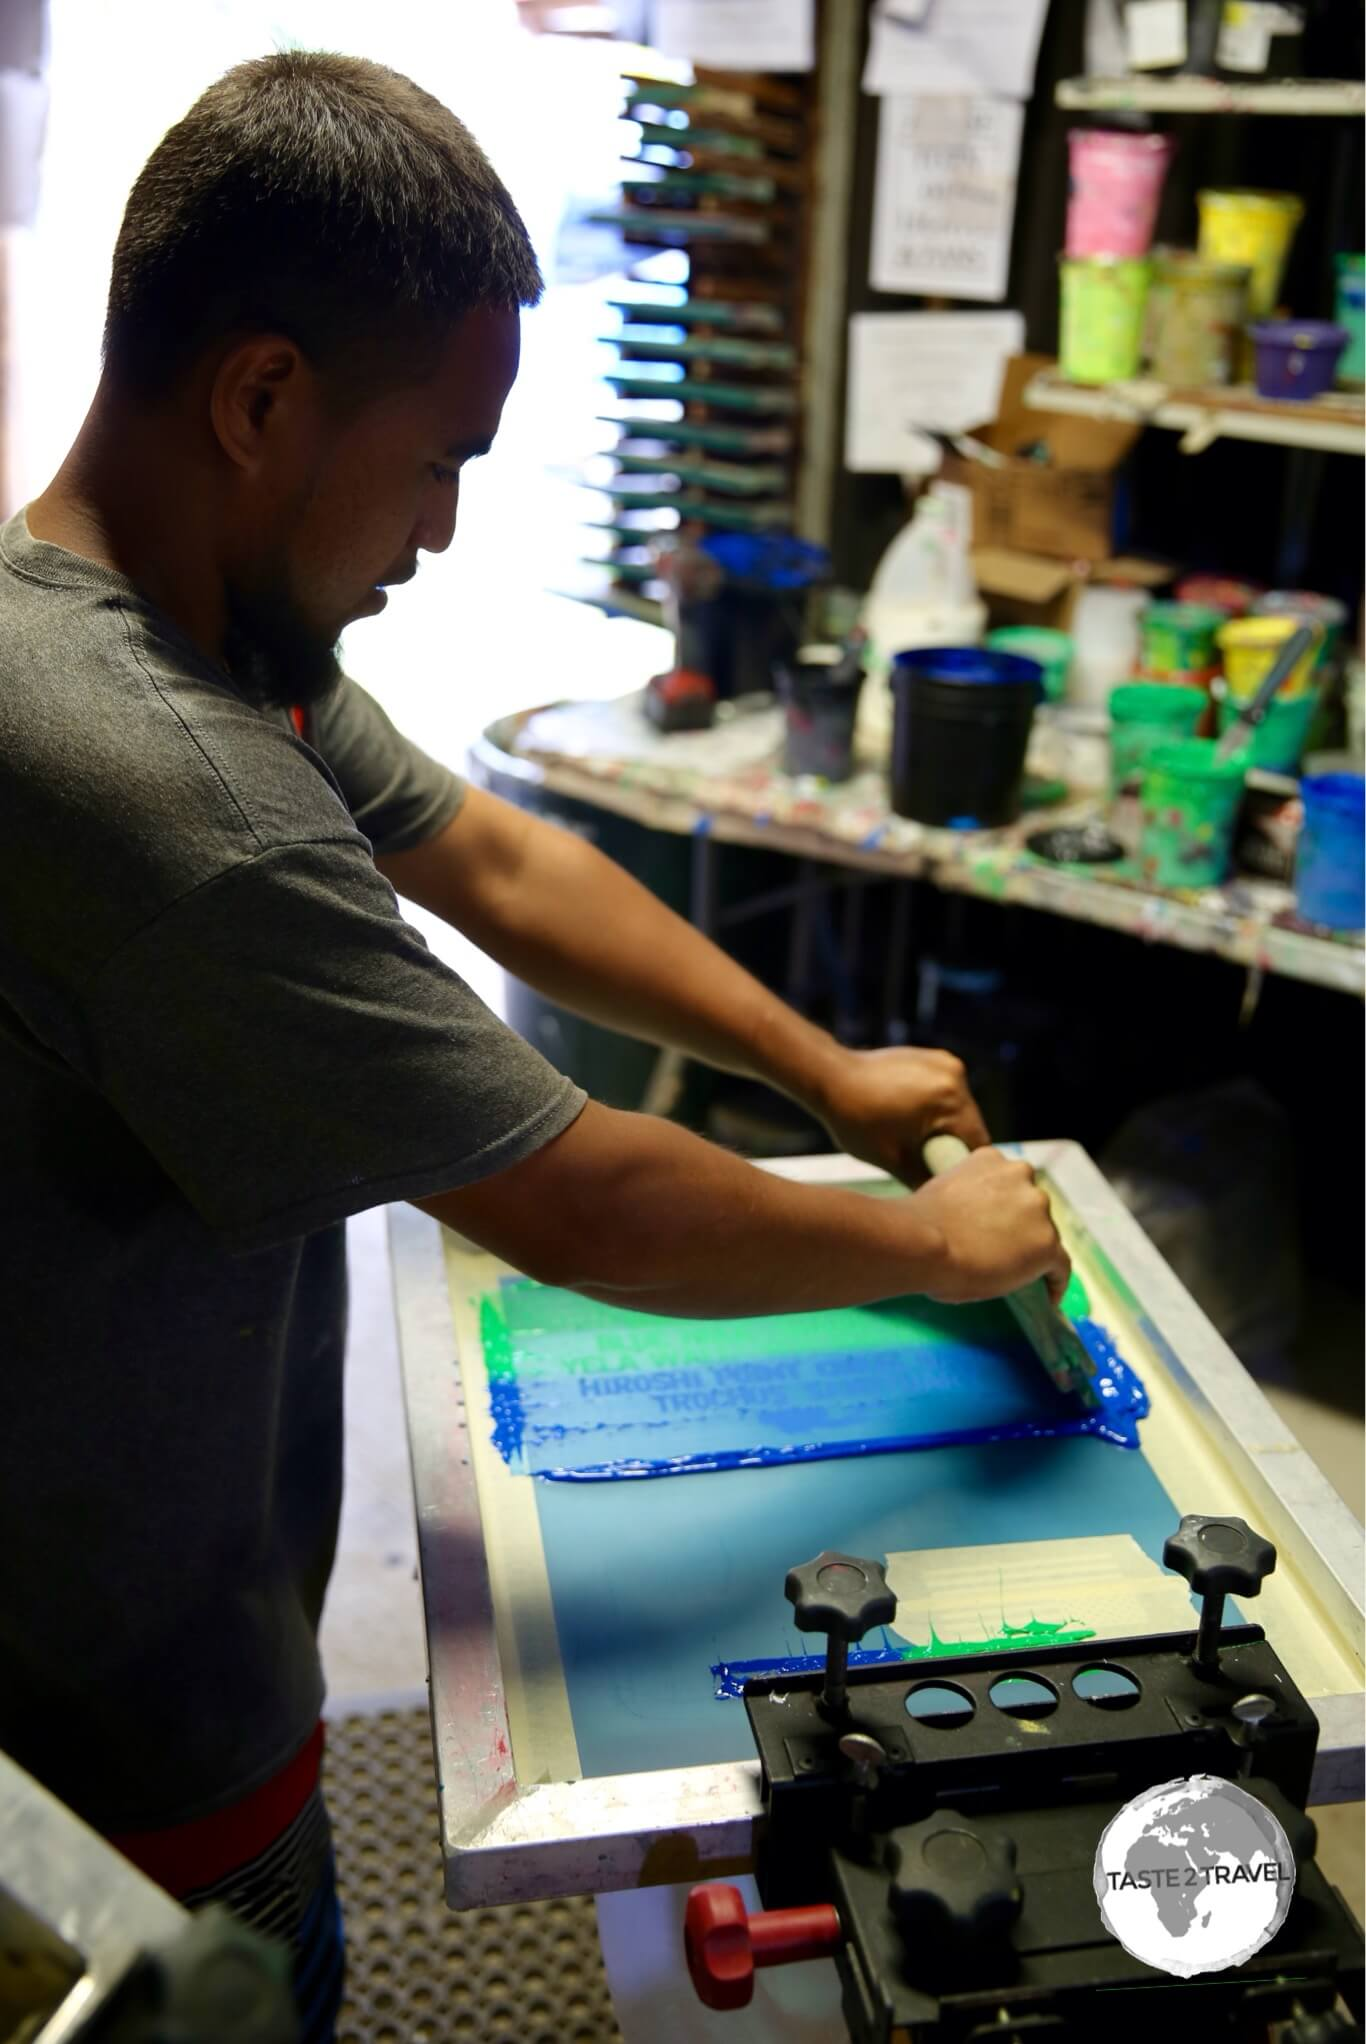 Screen printing the design onto the t-shirts.